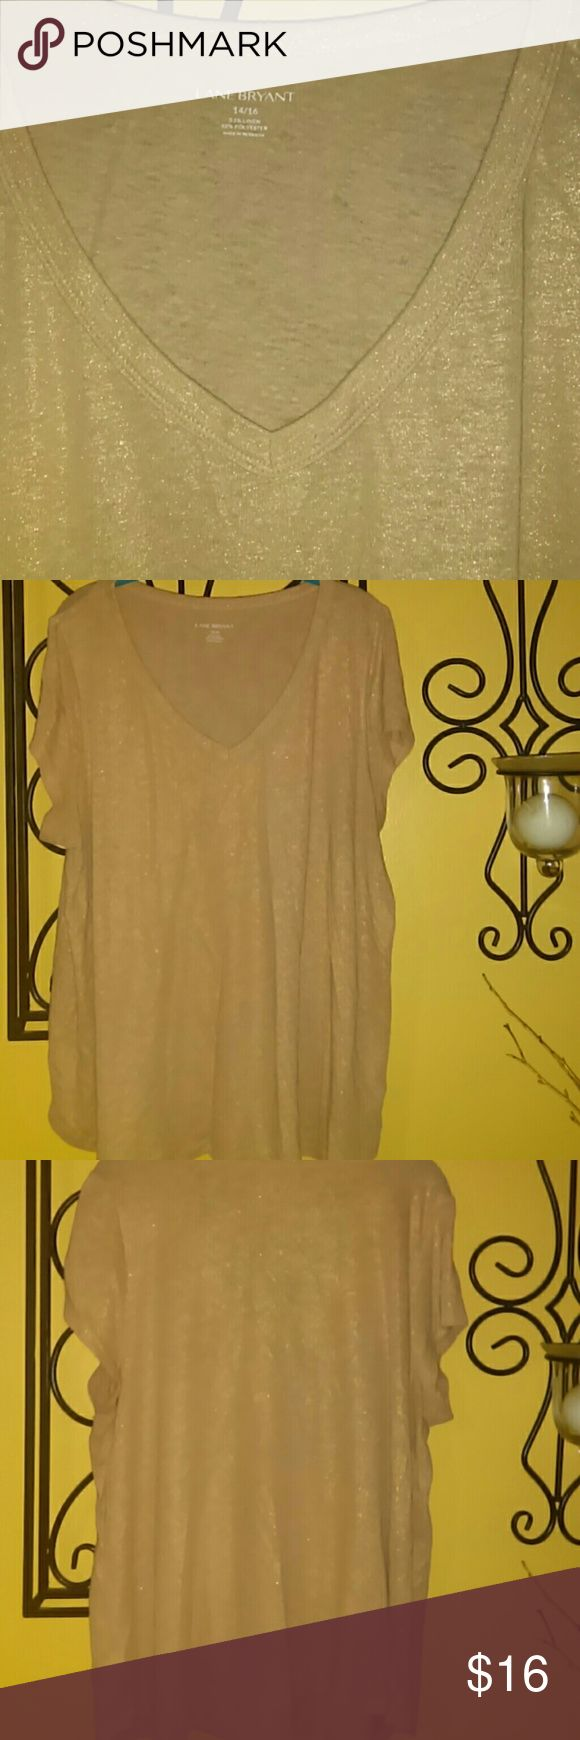 Lane Bryant metallic gold tee Good used condition, deep V-neck, shiny threads! Purchased in the fall of 2015, gently used one season. Size 14/16, 24 flat bust, 26 in long. Some piling in the armpit area. Lane Bryant Tops Tees - Short Sleeve